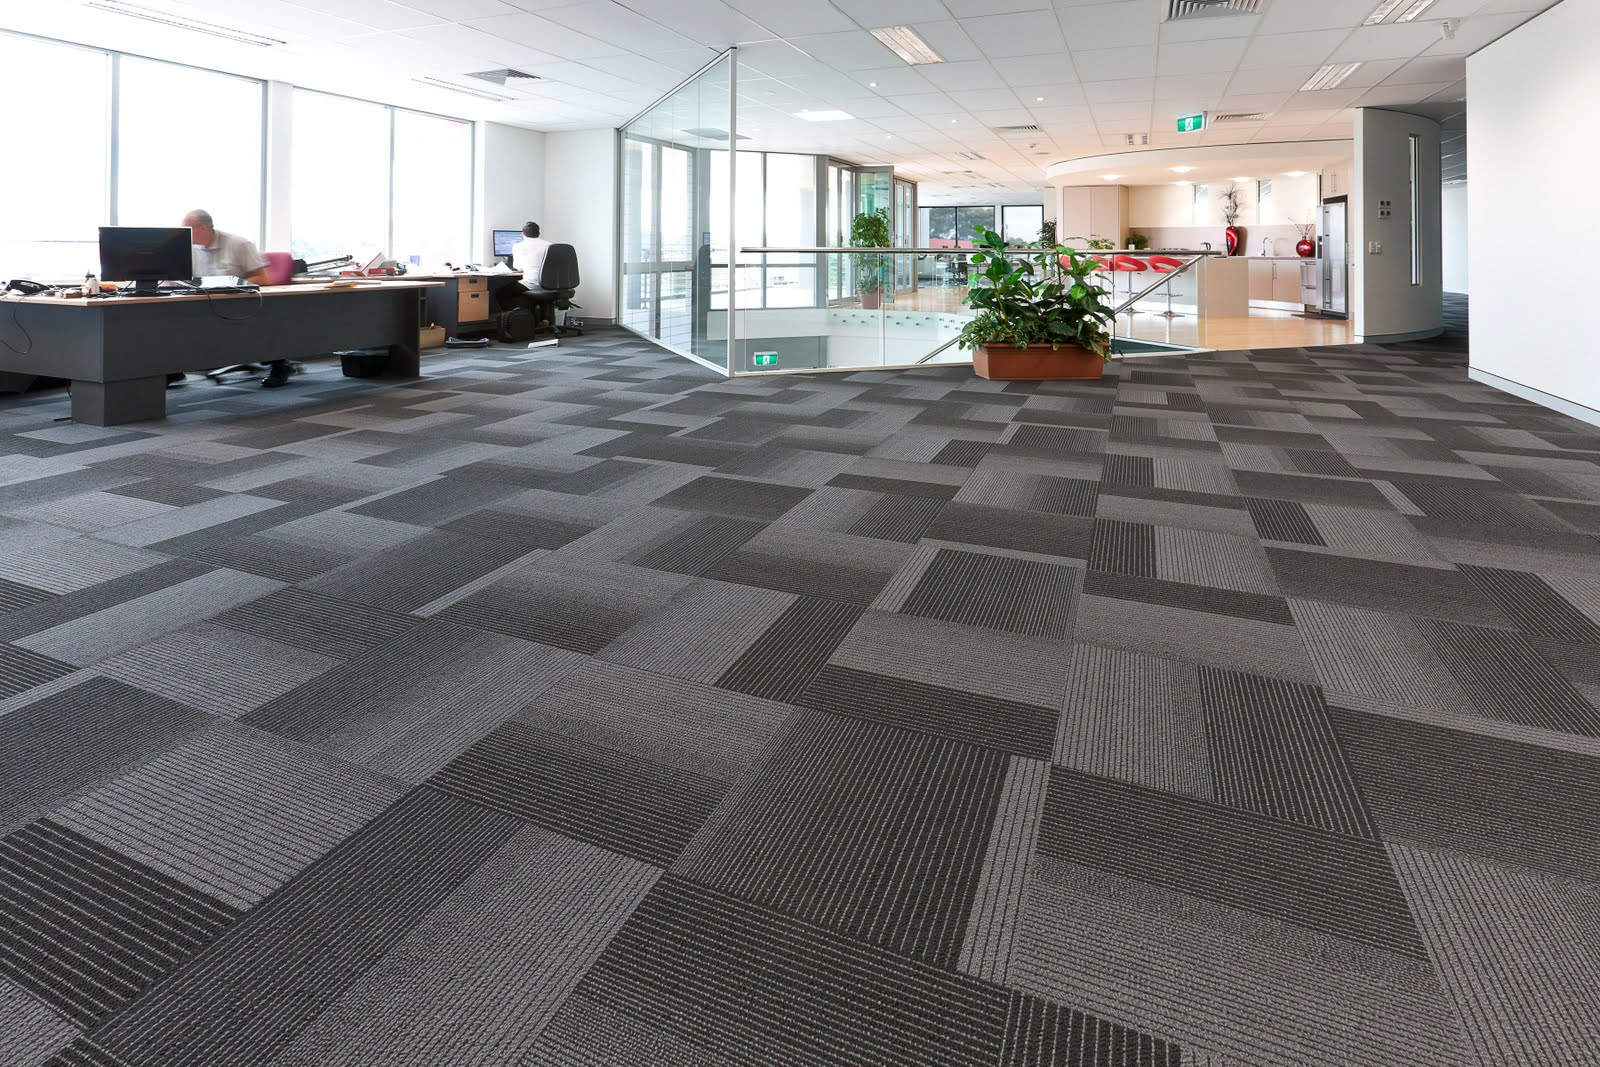 Carpet design ideas wide office space with dark grey and silver wall to wall carpet design CSAMYXV